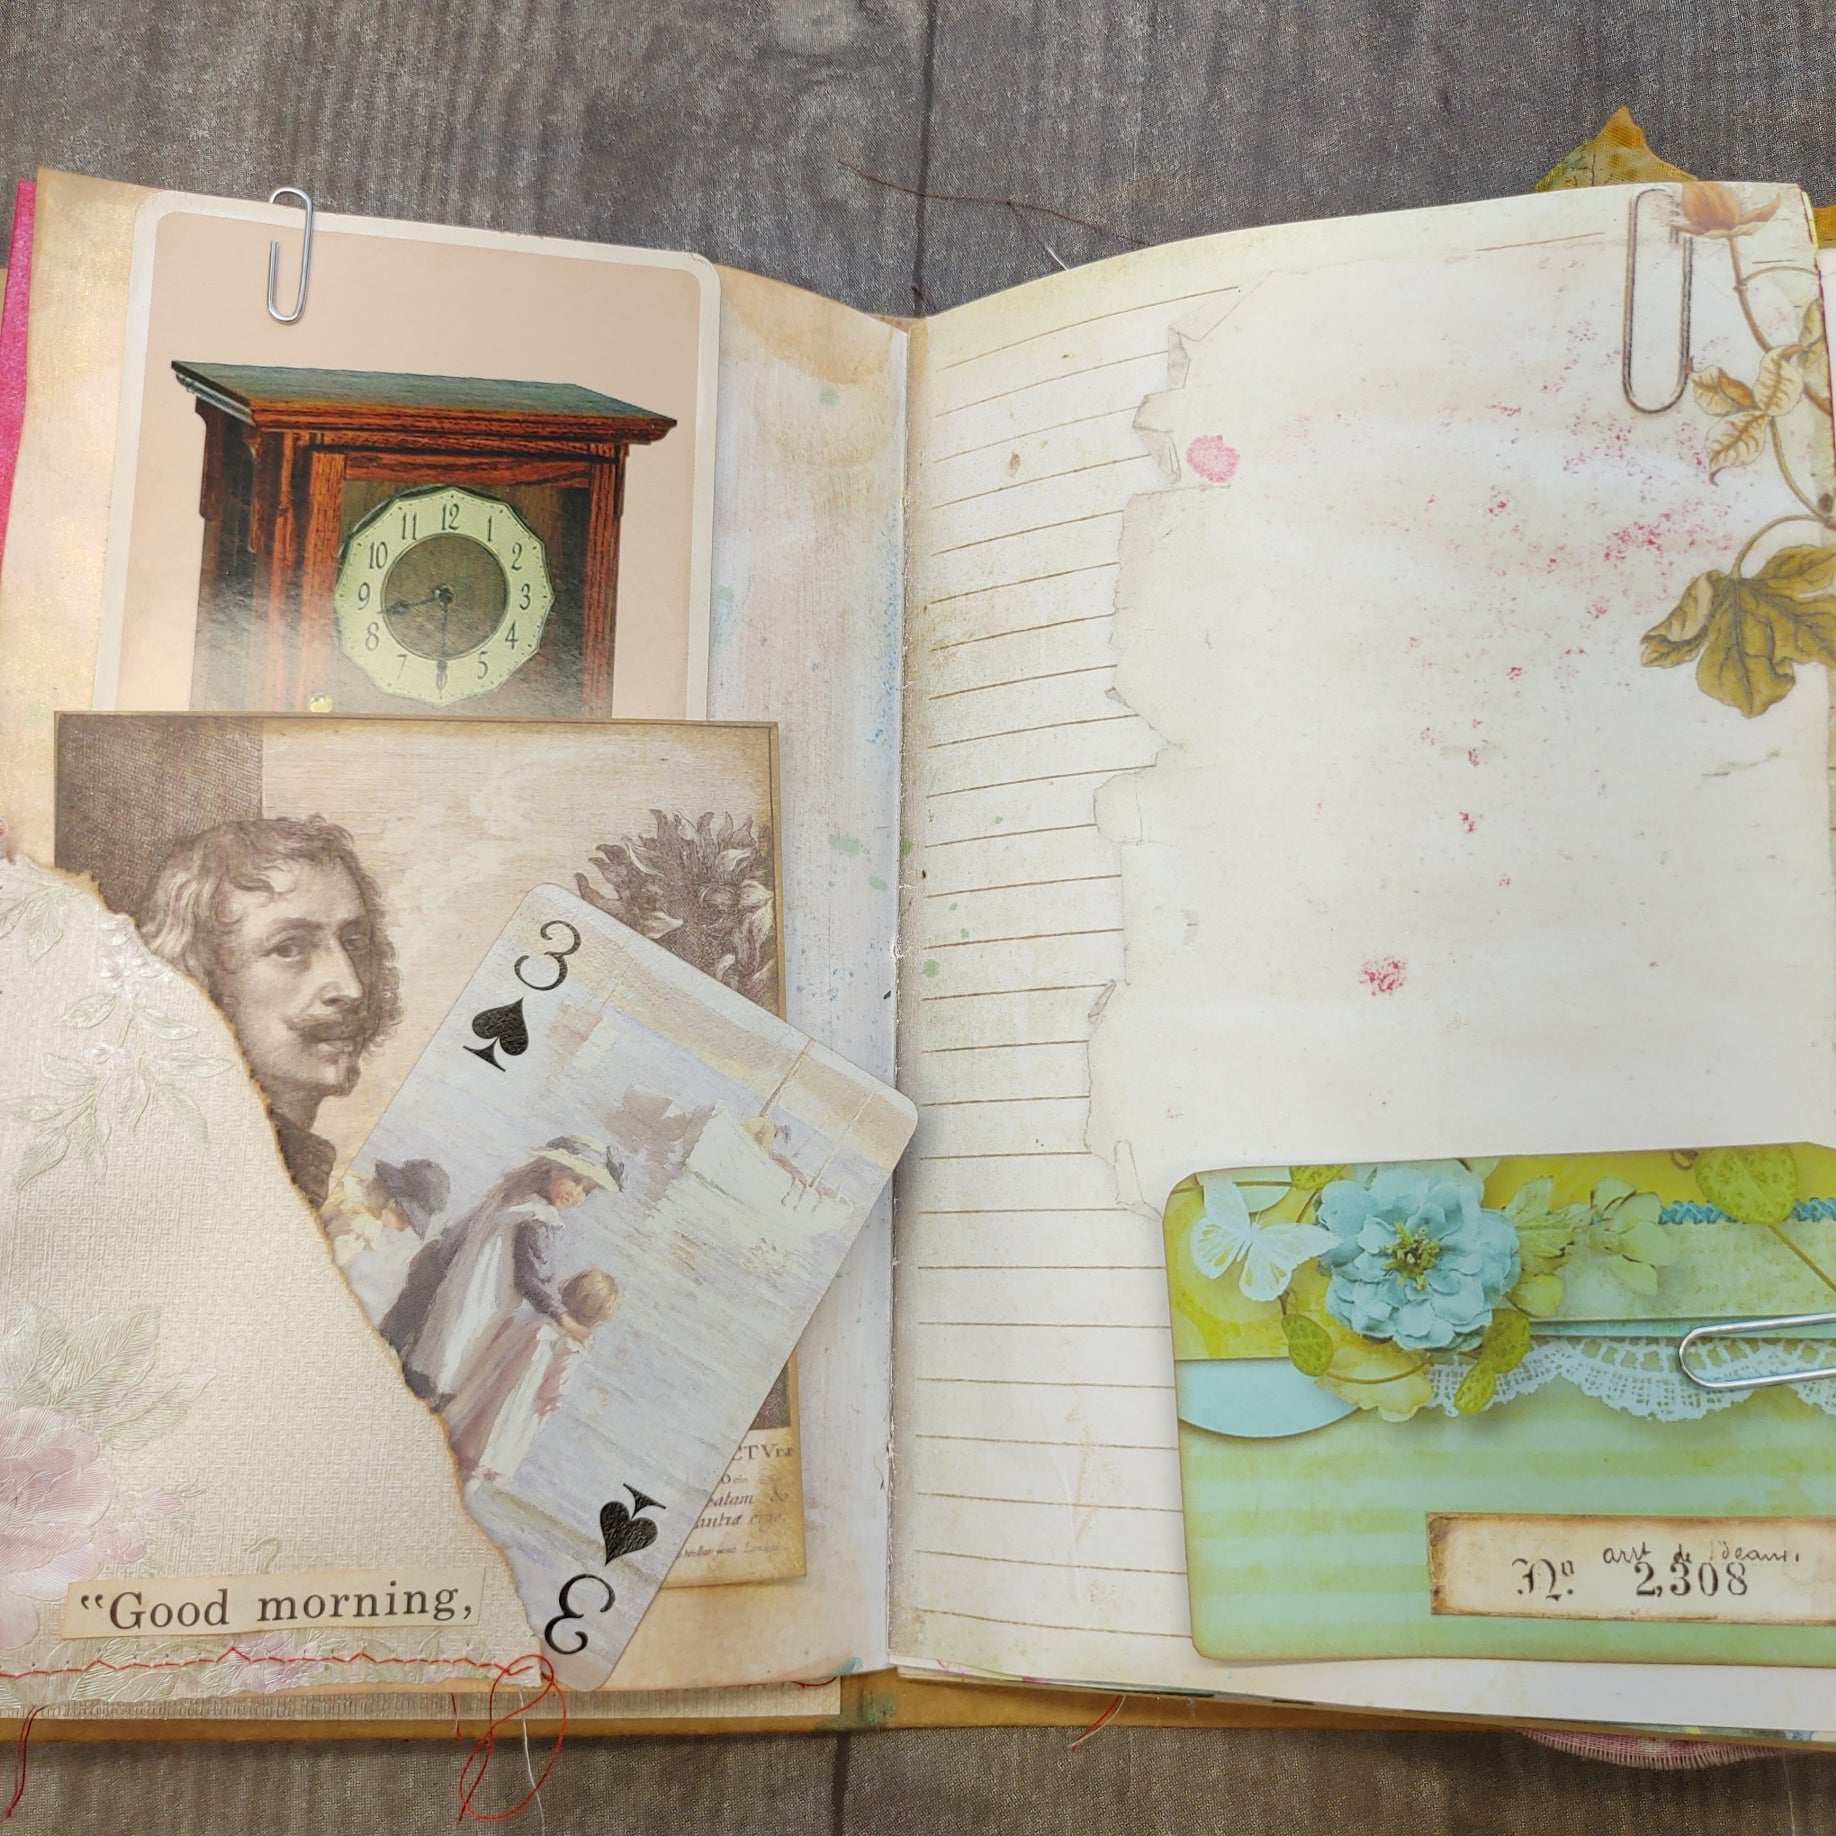 Our Memories Junk Journal - LZ